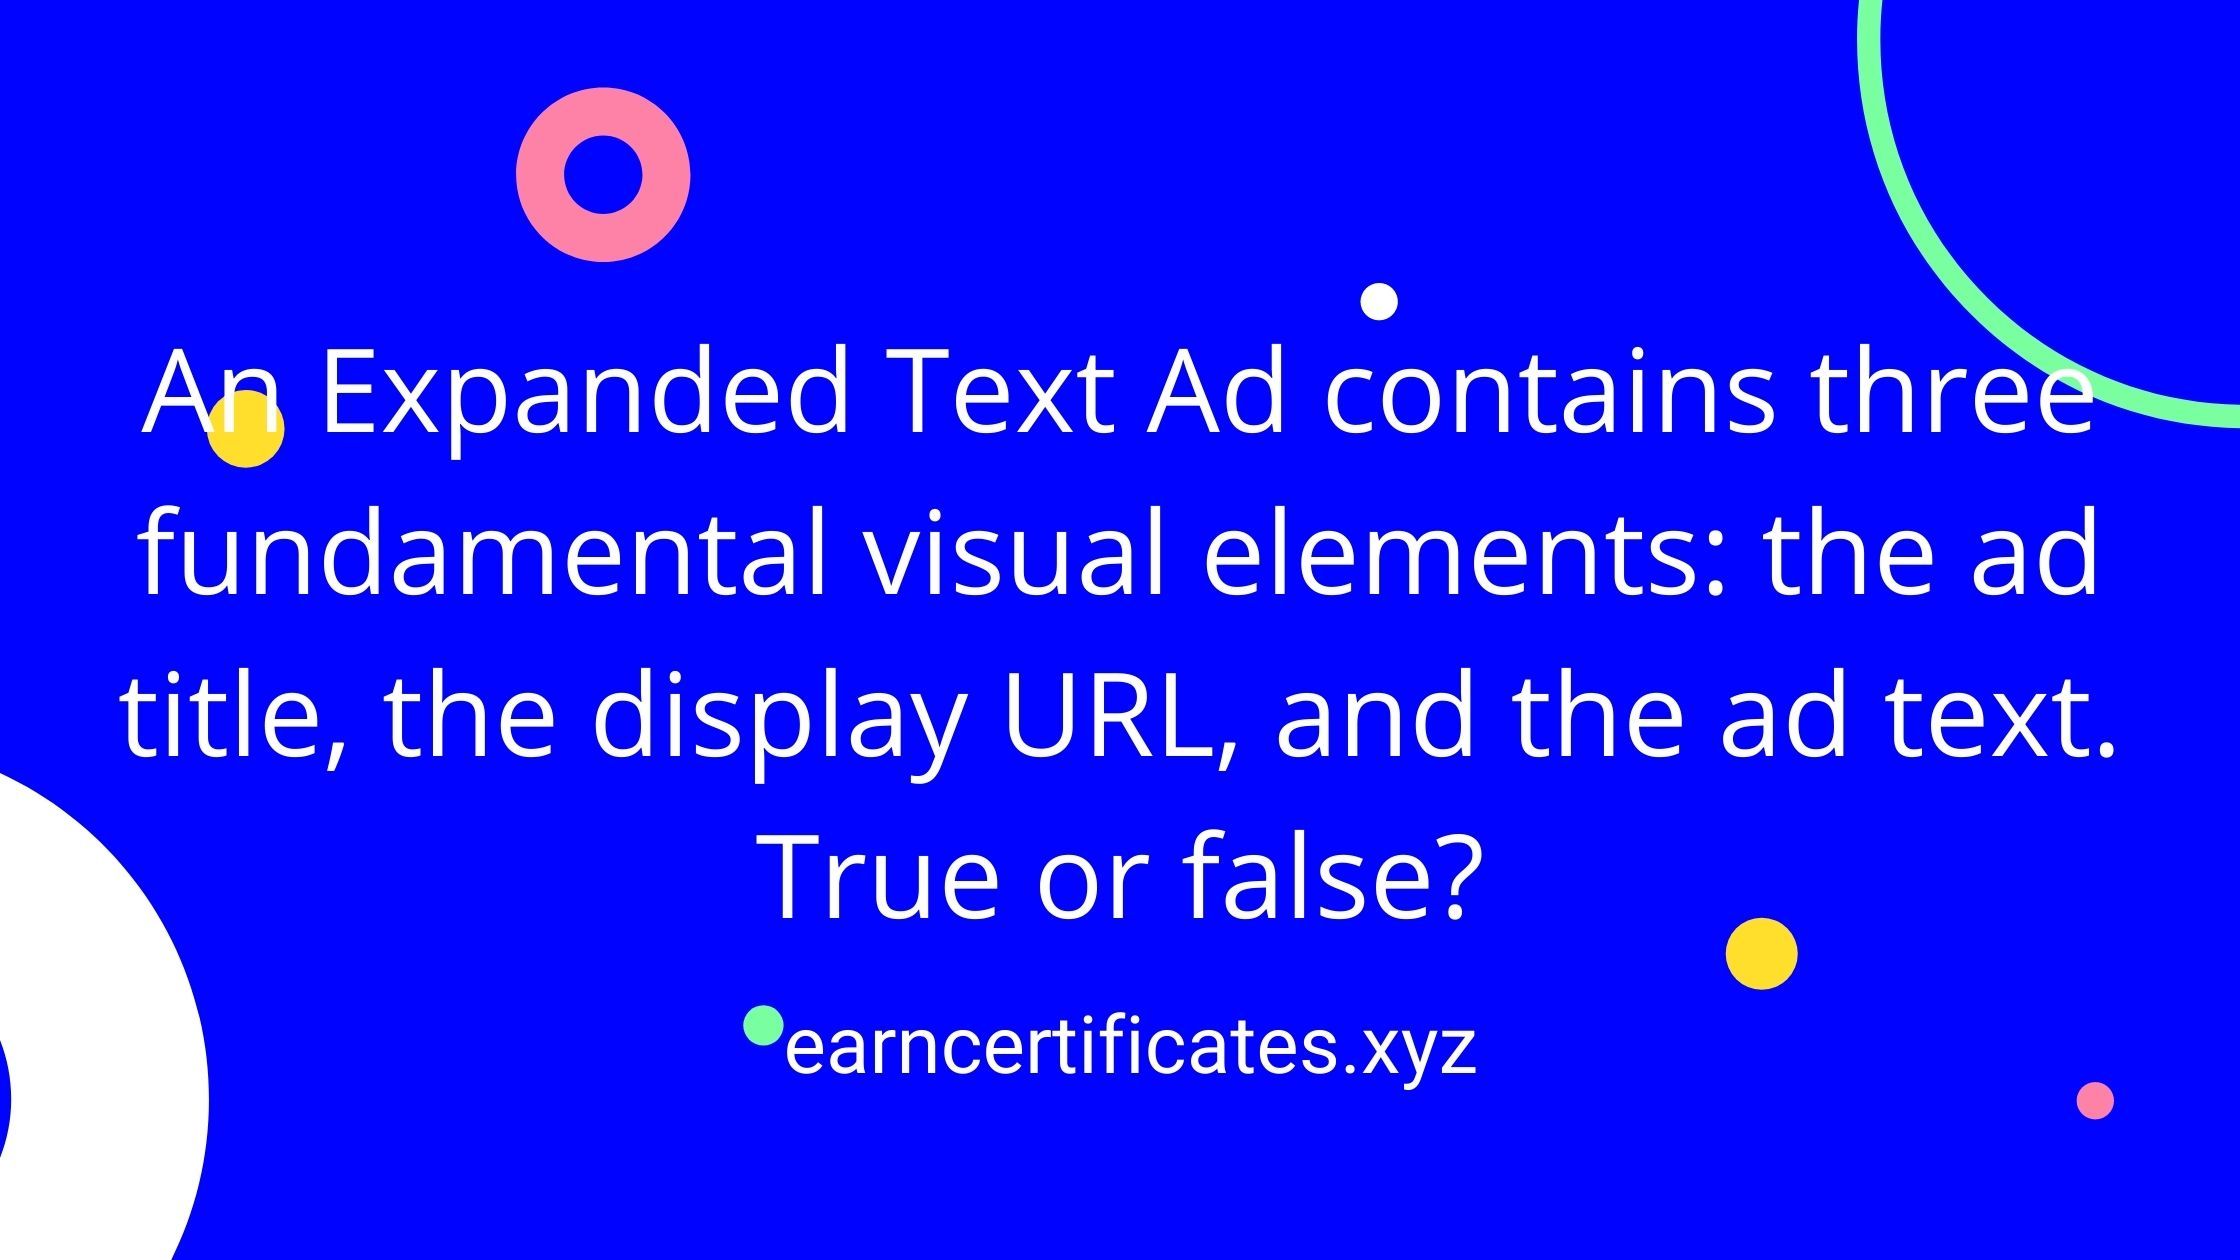 An Expanded Text Ad contains three fundamental visual elements: the ad title, the display URL, and the ad text. True or false?